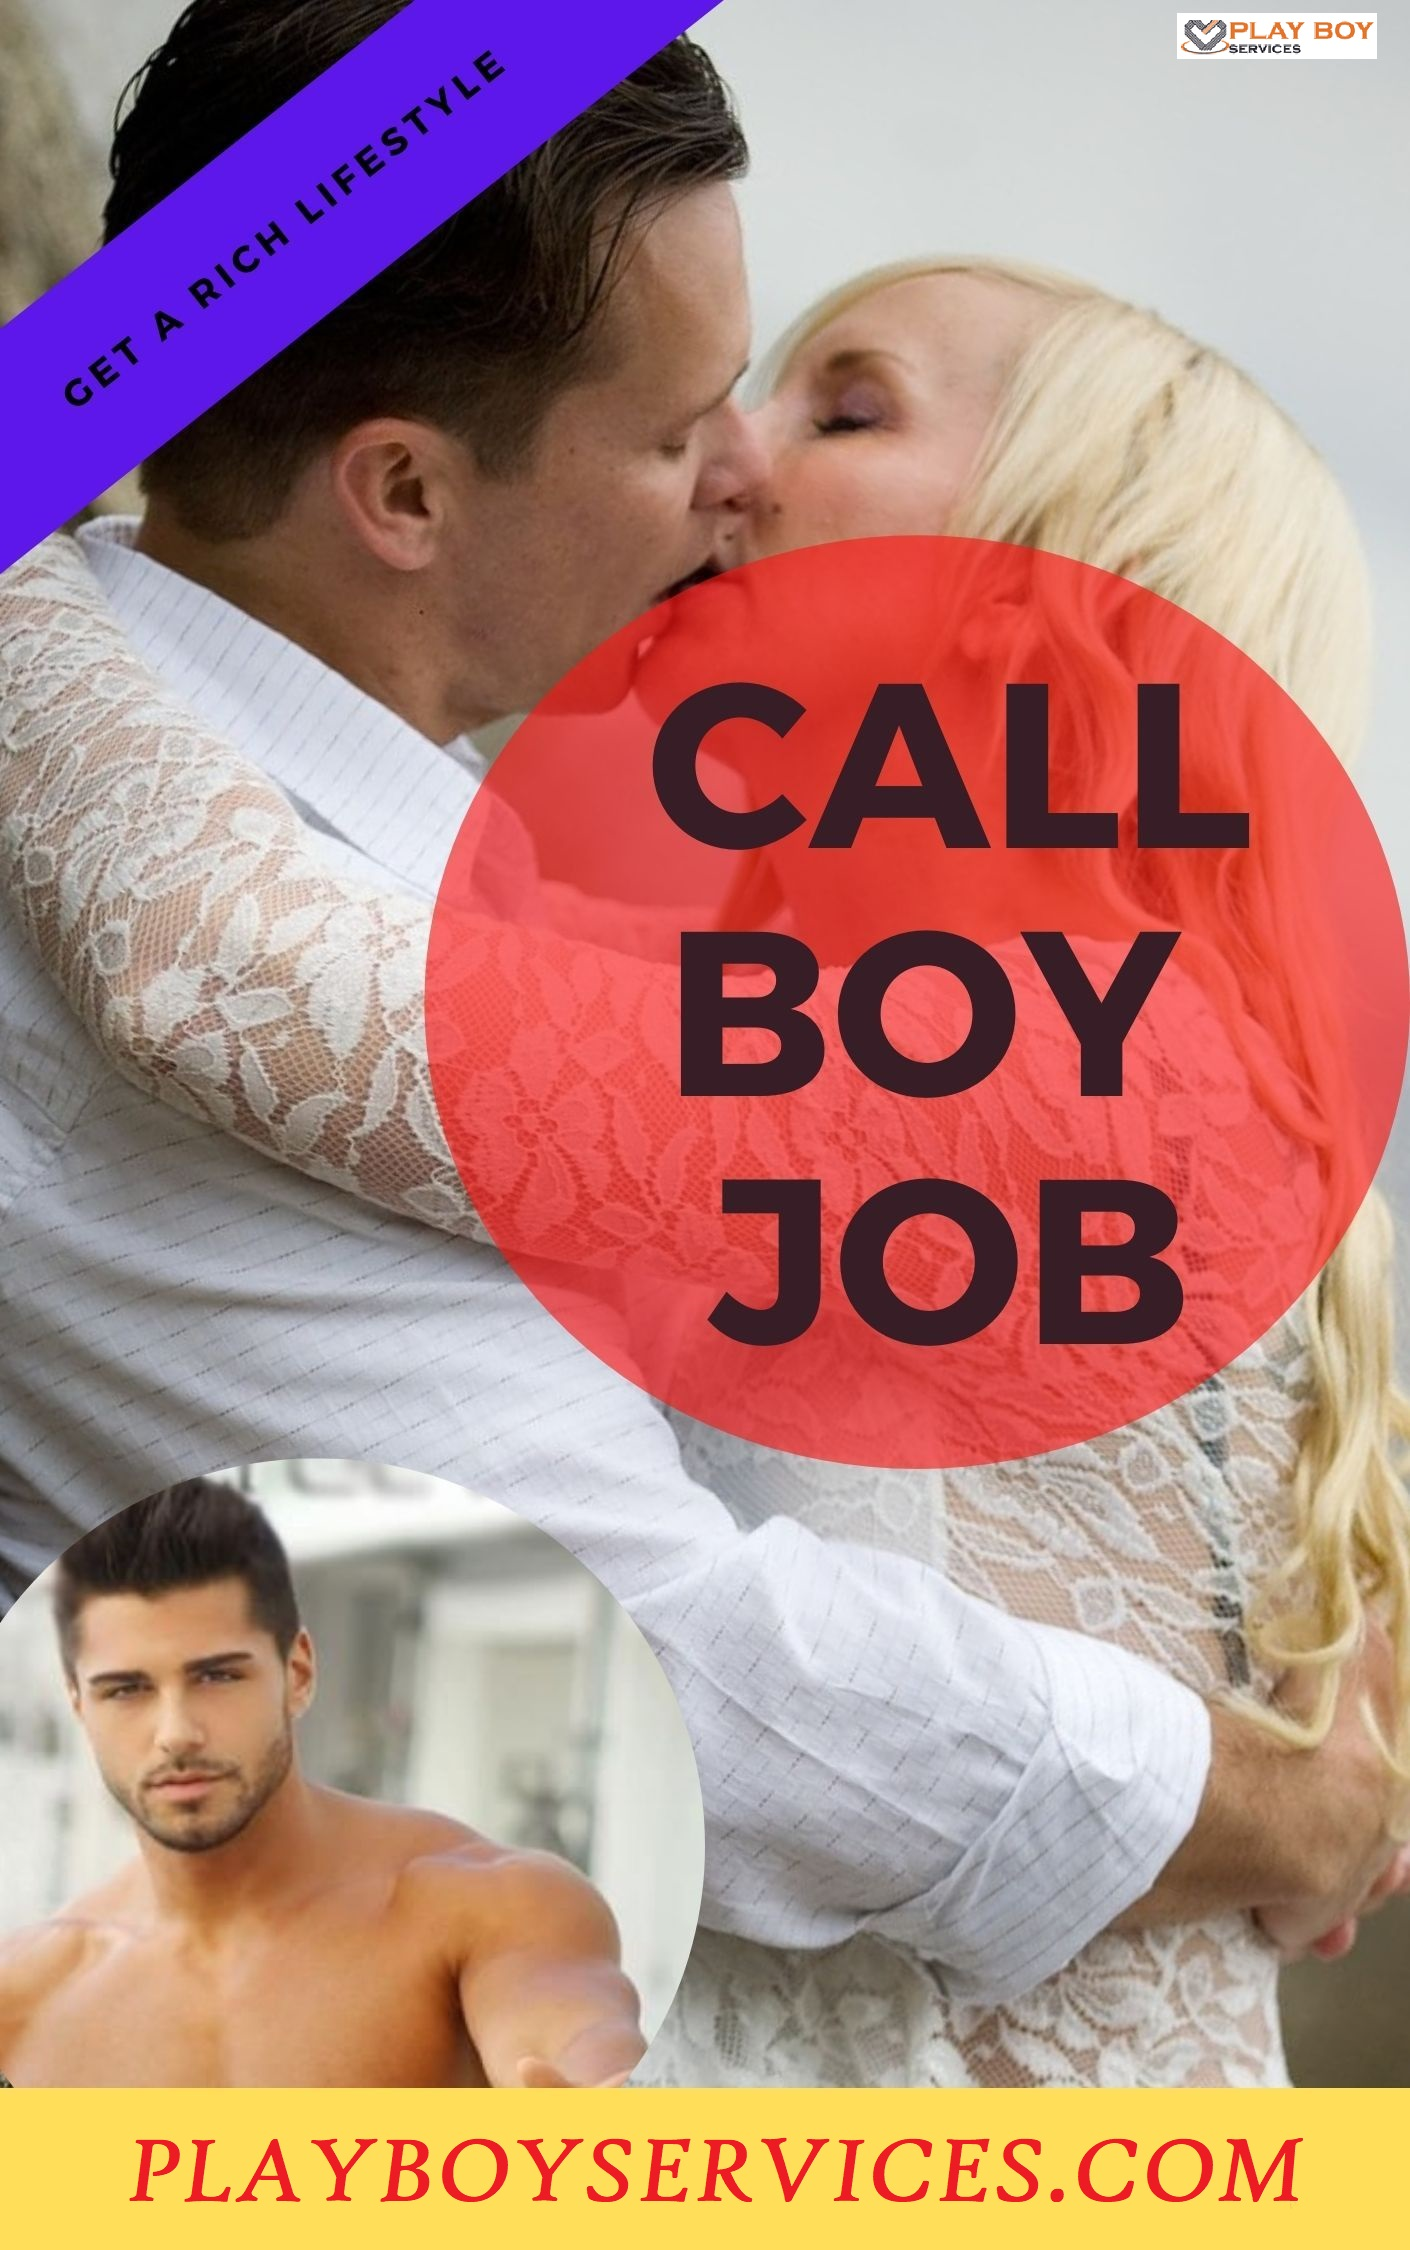 Join Now Male escort hiring in Ahmedabad Call Miss Gurleen Aggarwal:9171879864